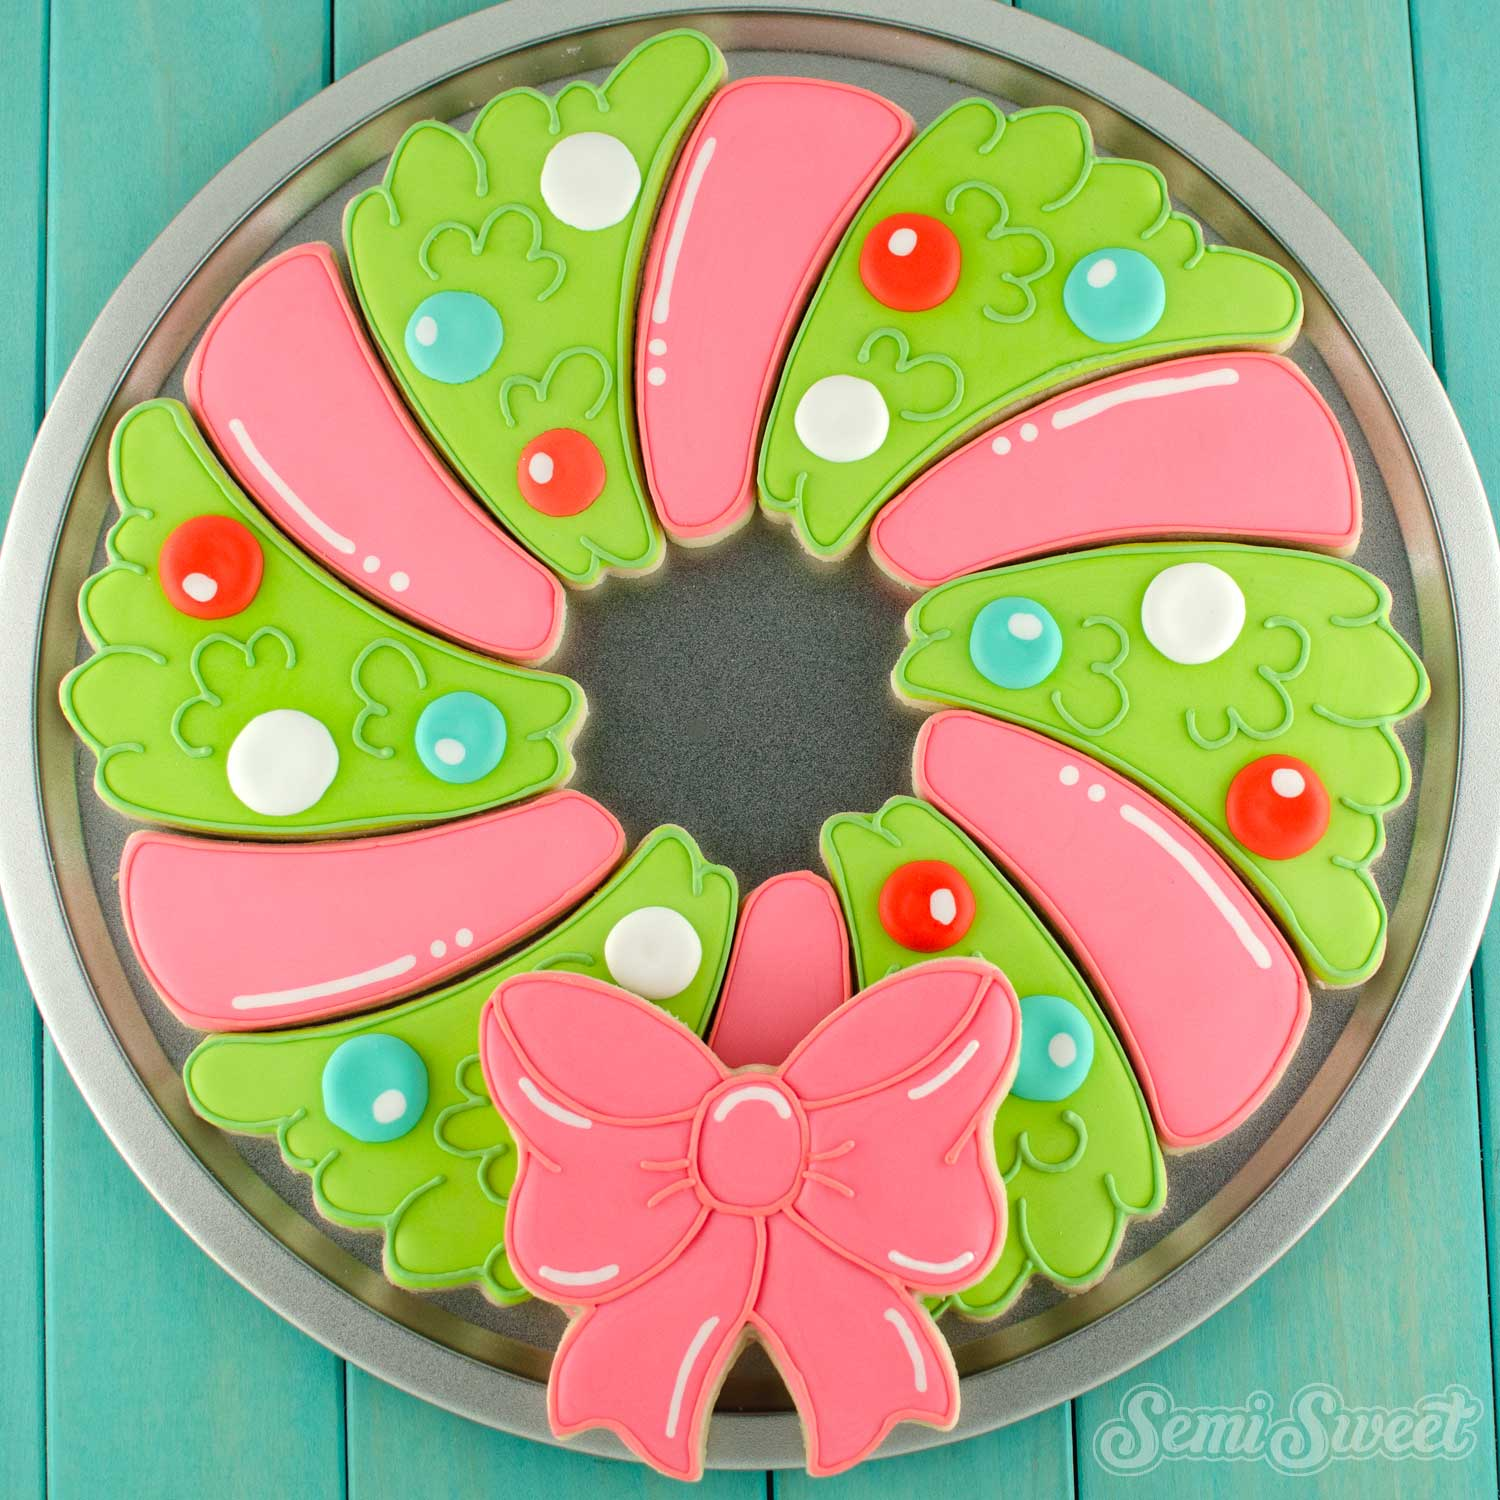 How to Make a Christmas Wreath Cookie Platter